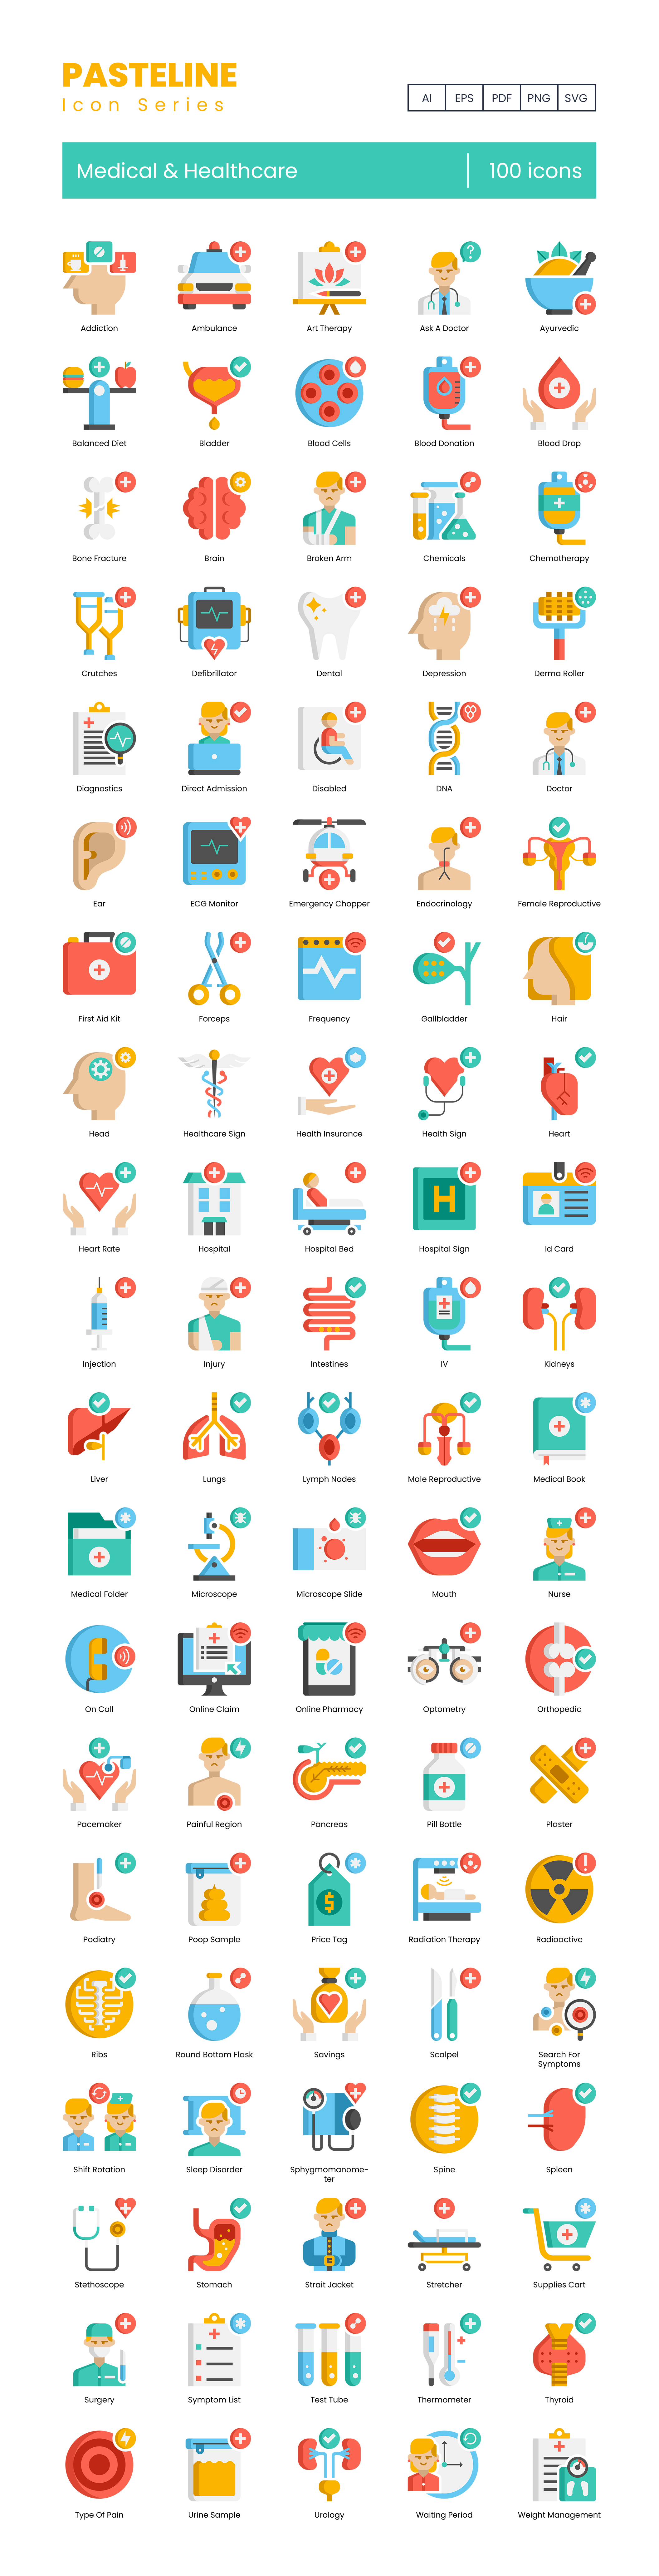 medical-healthcare-icons